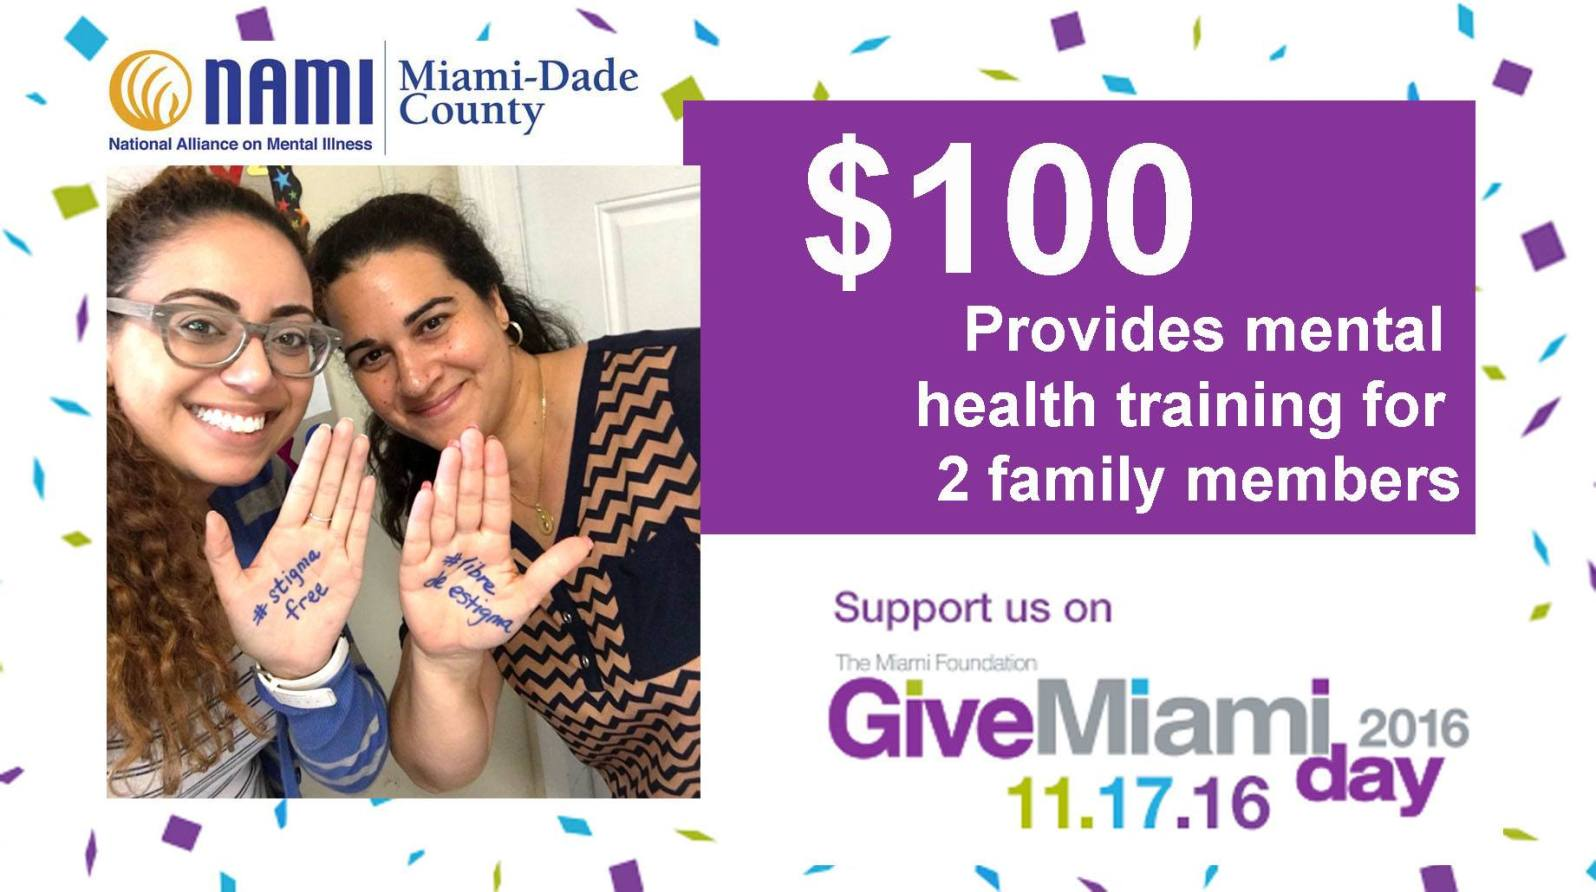 Nami is a part of Give Miami Day.